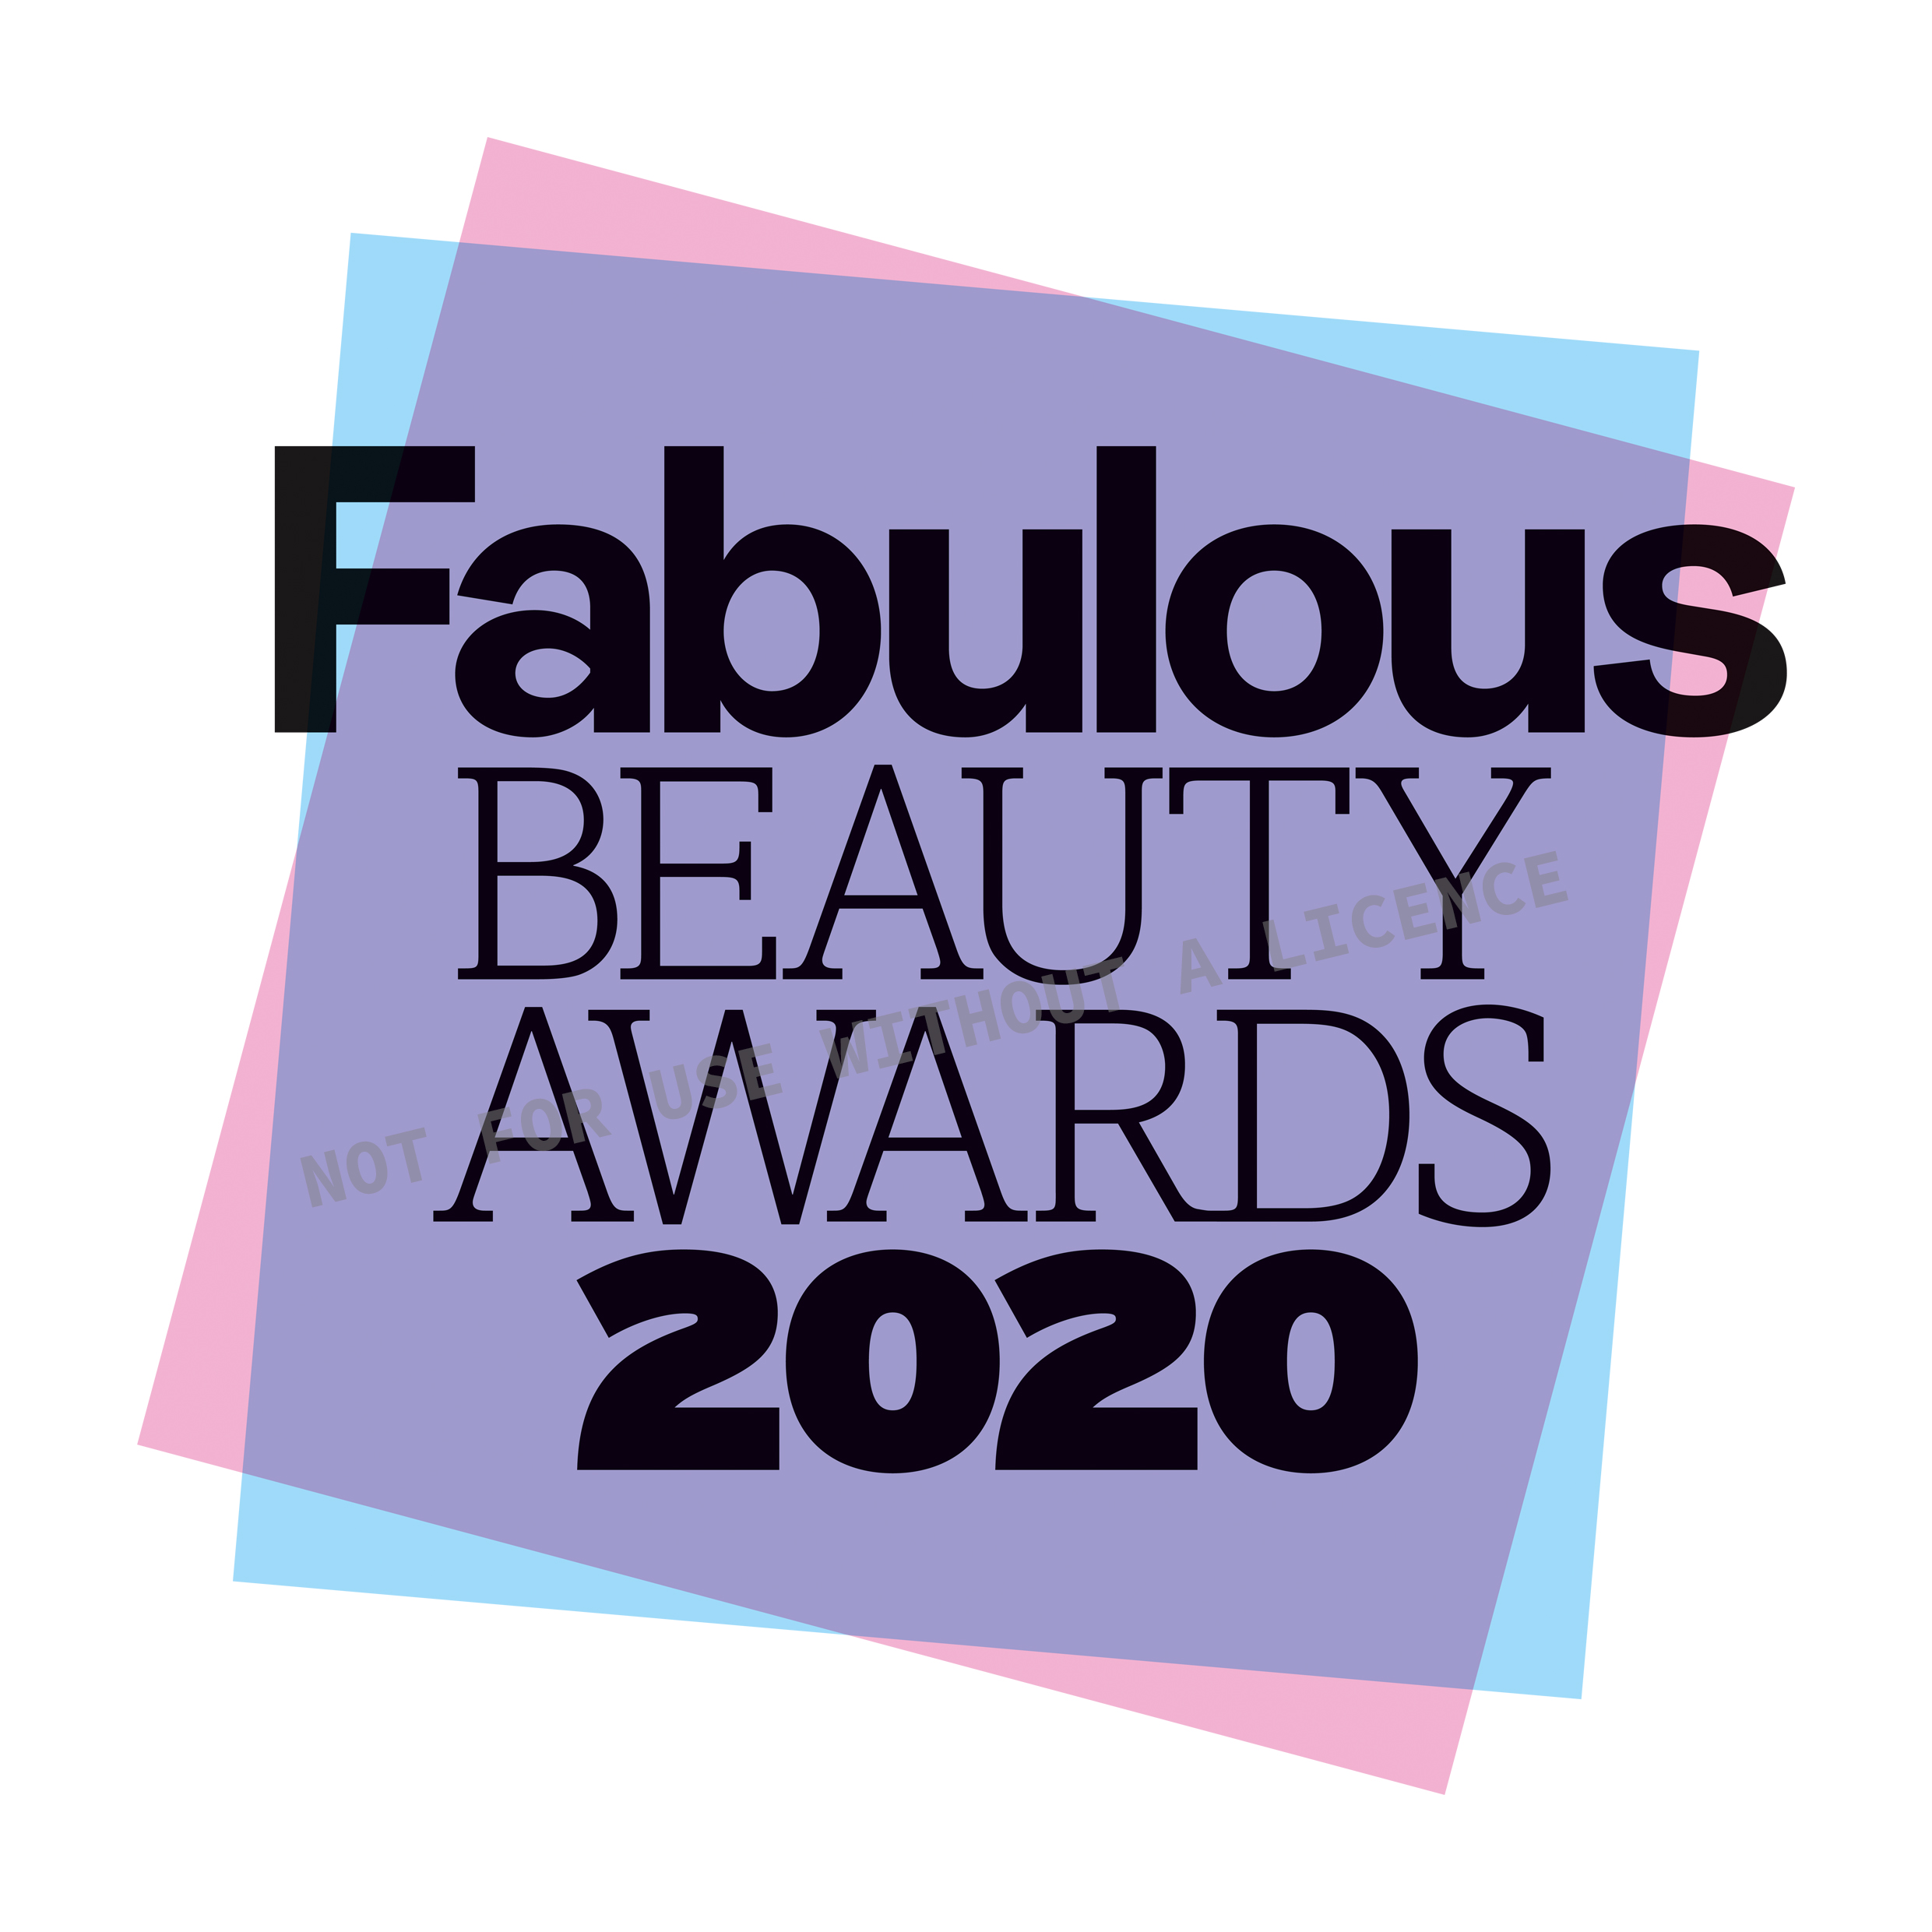 Fabulous Beauty Awards 2020